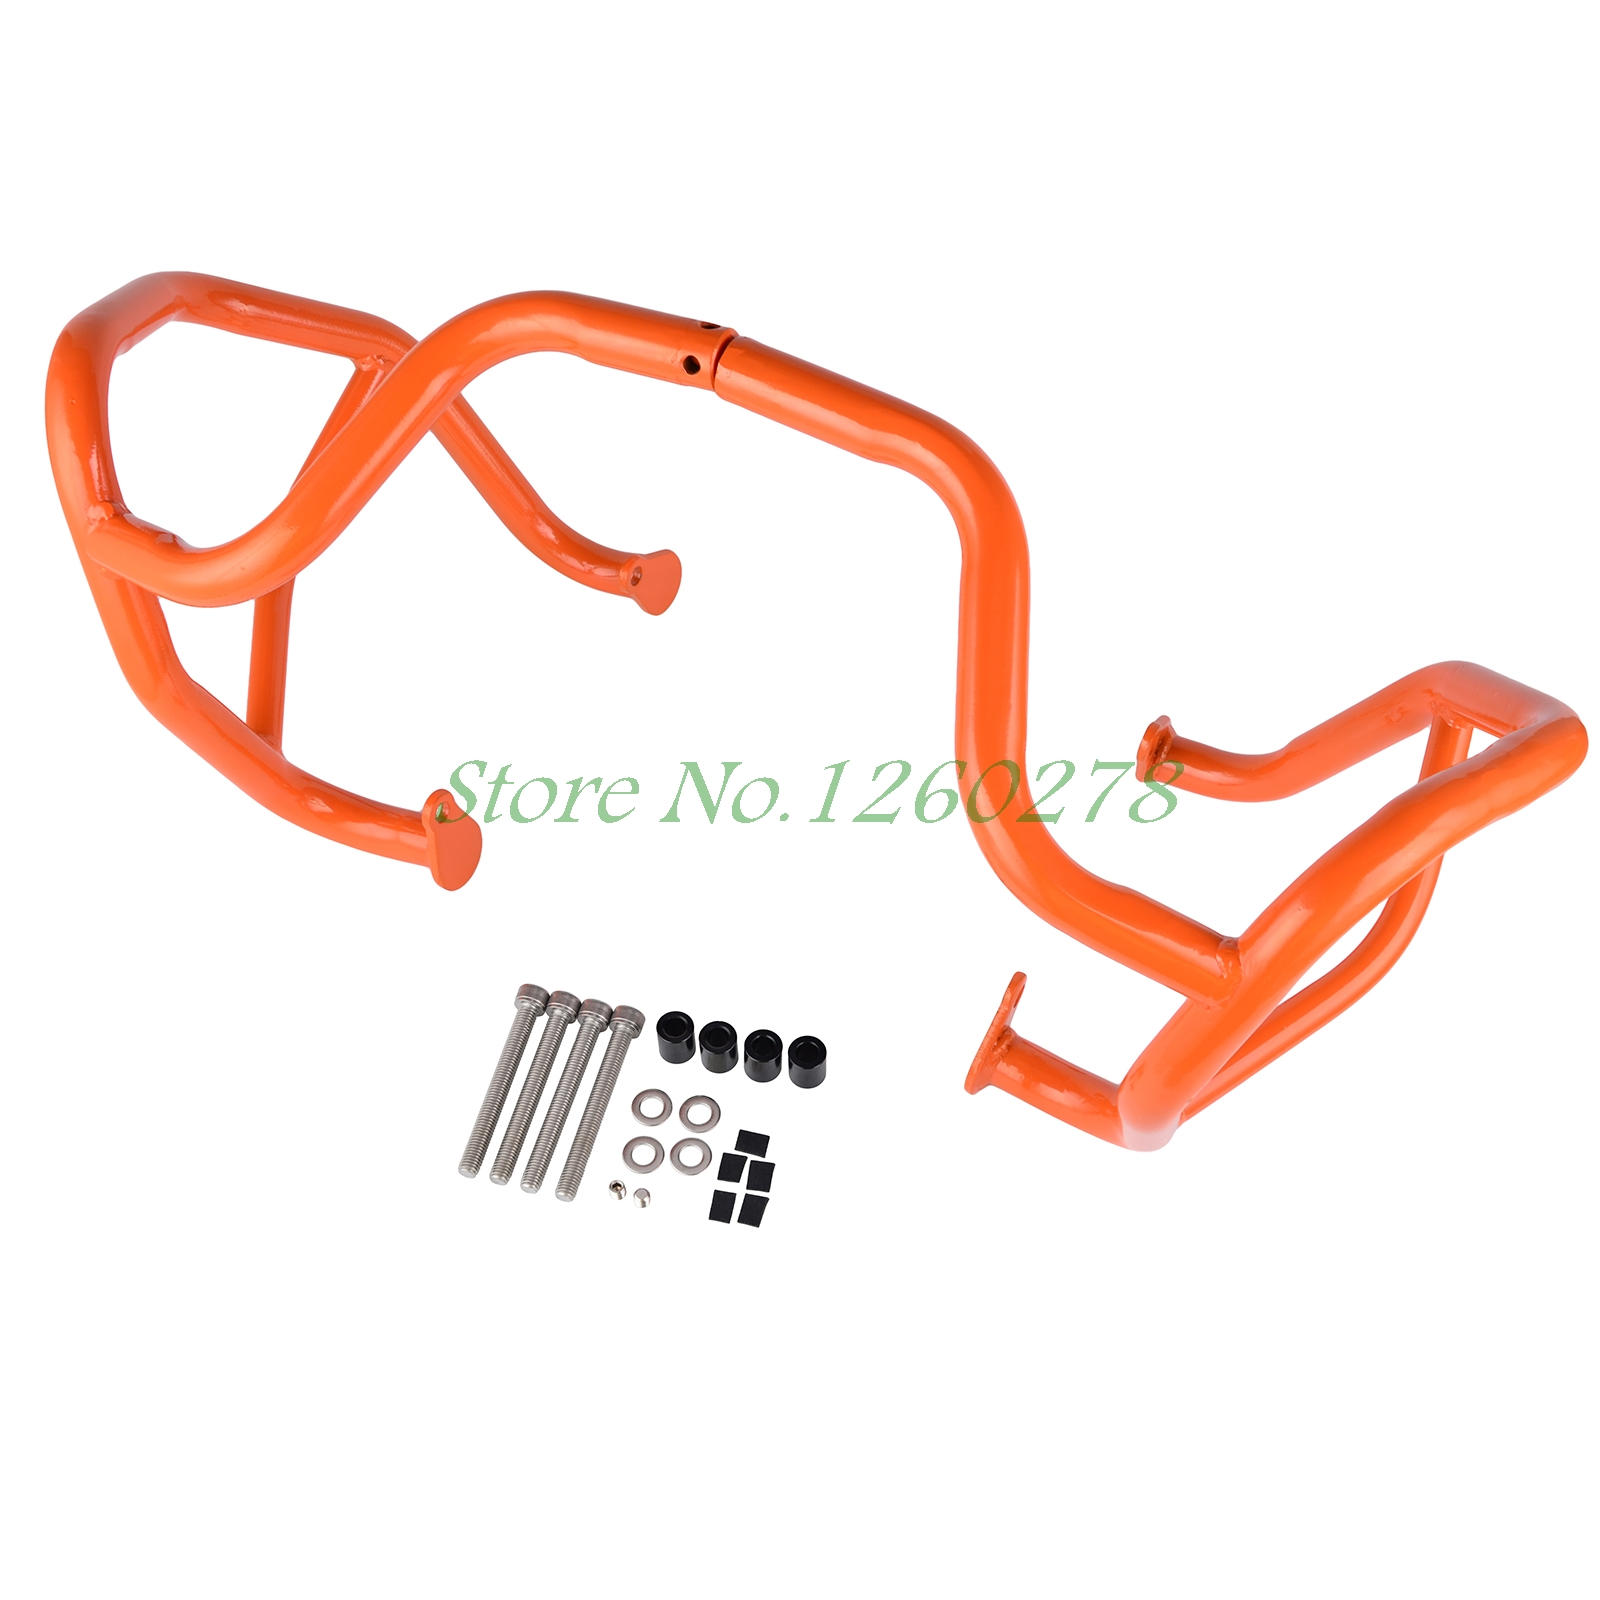 Motorcycle Crash Bar Frame Engine Protection Guard Bumper For KTM 1190 Adventure/ R 2013 2014 2015 2016 худи print bar adventure fiction